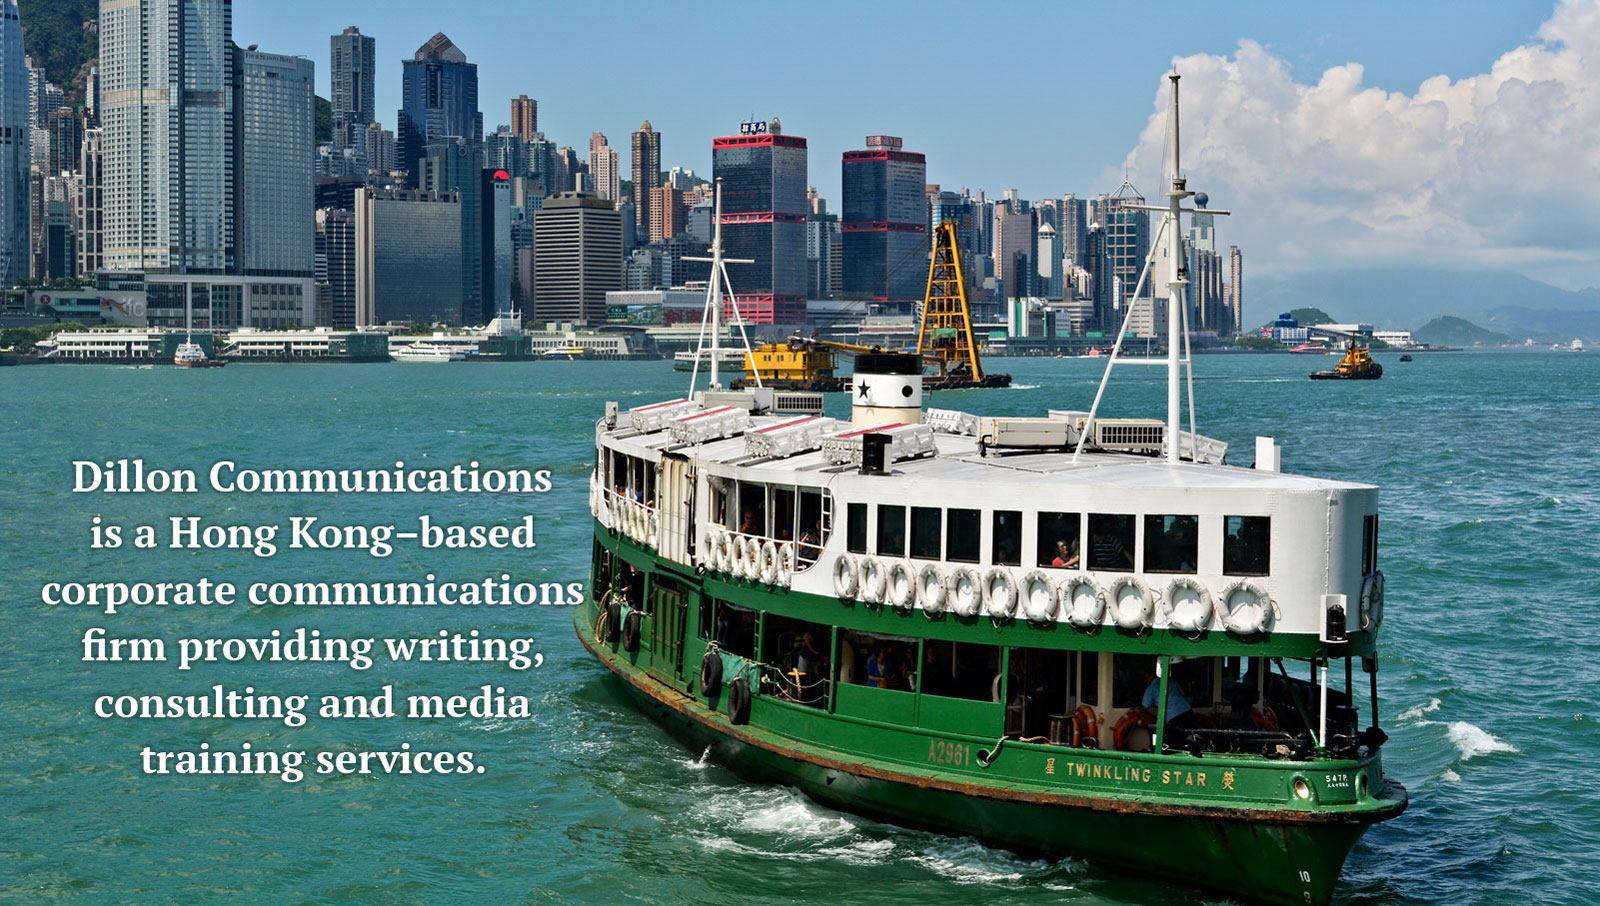 Dillon Communications is a Hong Kong-based corporate communications company